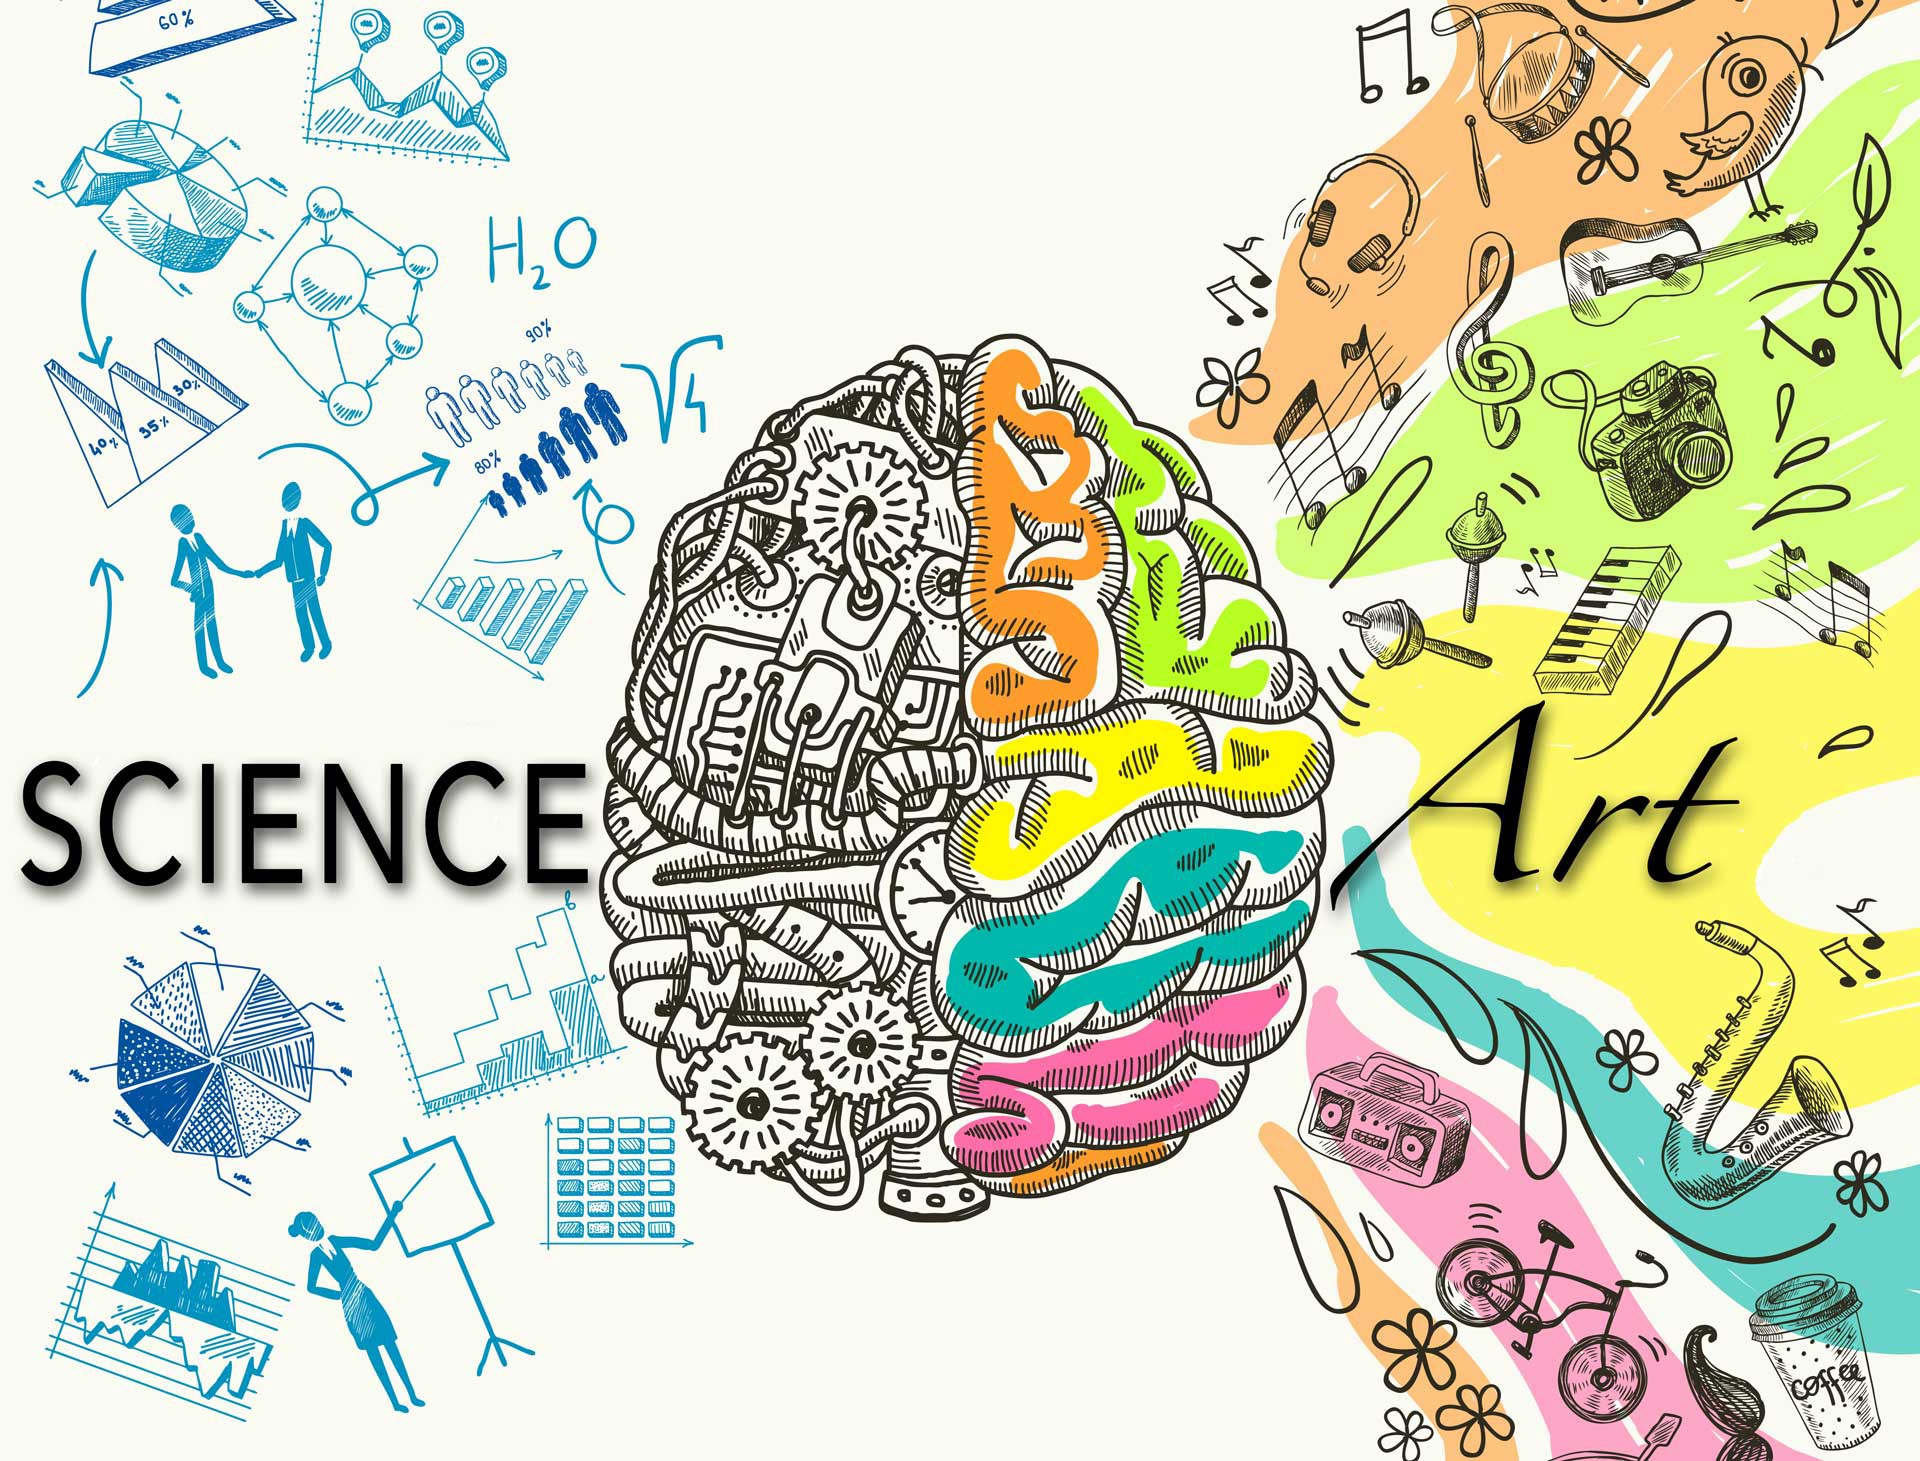 science marketing digital sales brain bilim ve libertad colores connection arte islamic drawing proceso driven marketers week notes two ciencias